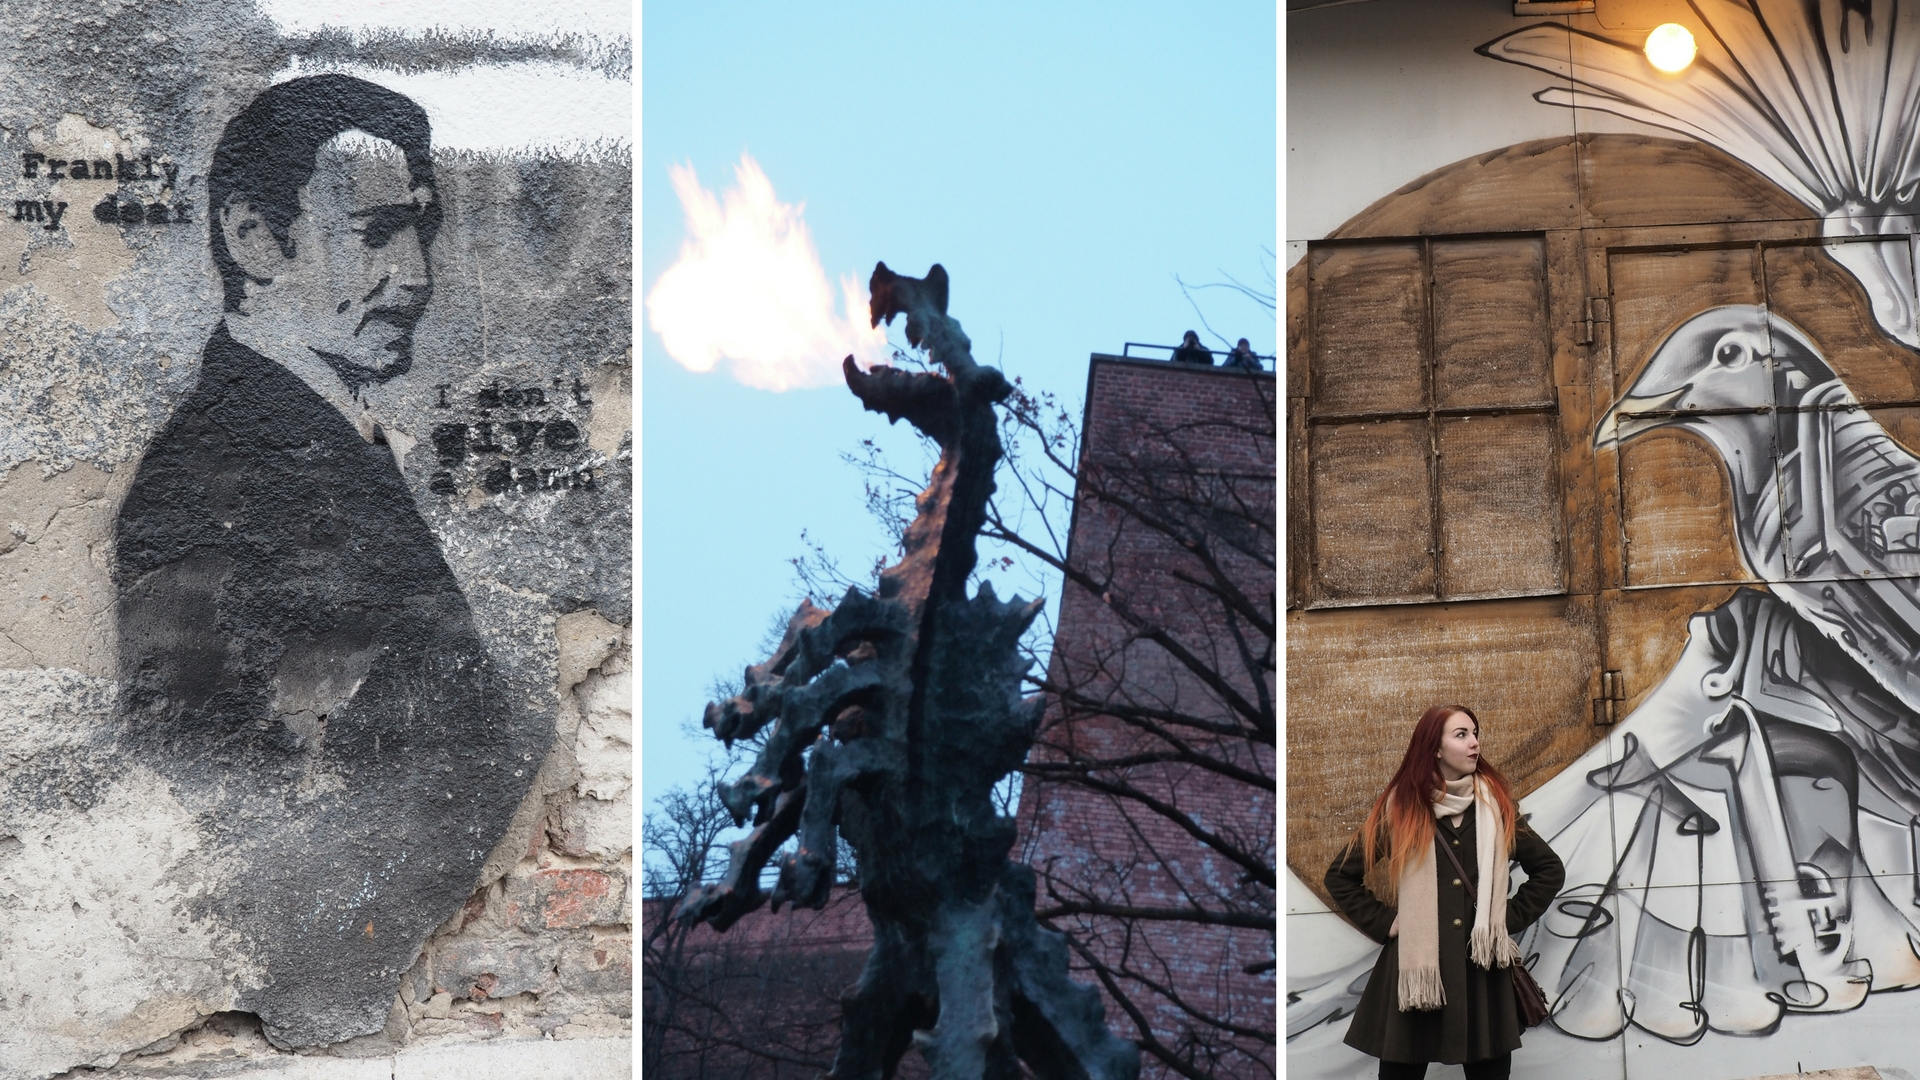 Krakow Diaries Pt. 2: All Settled & Mostly Gone